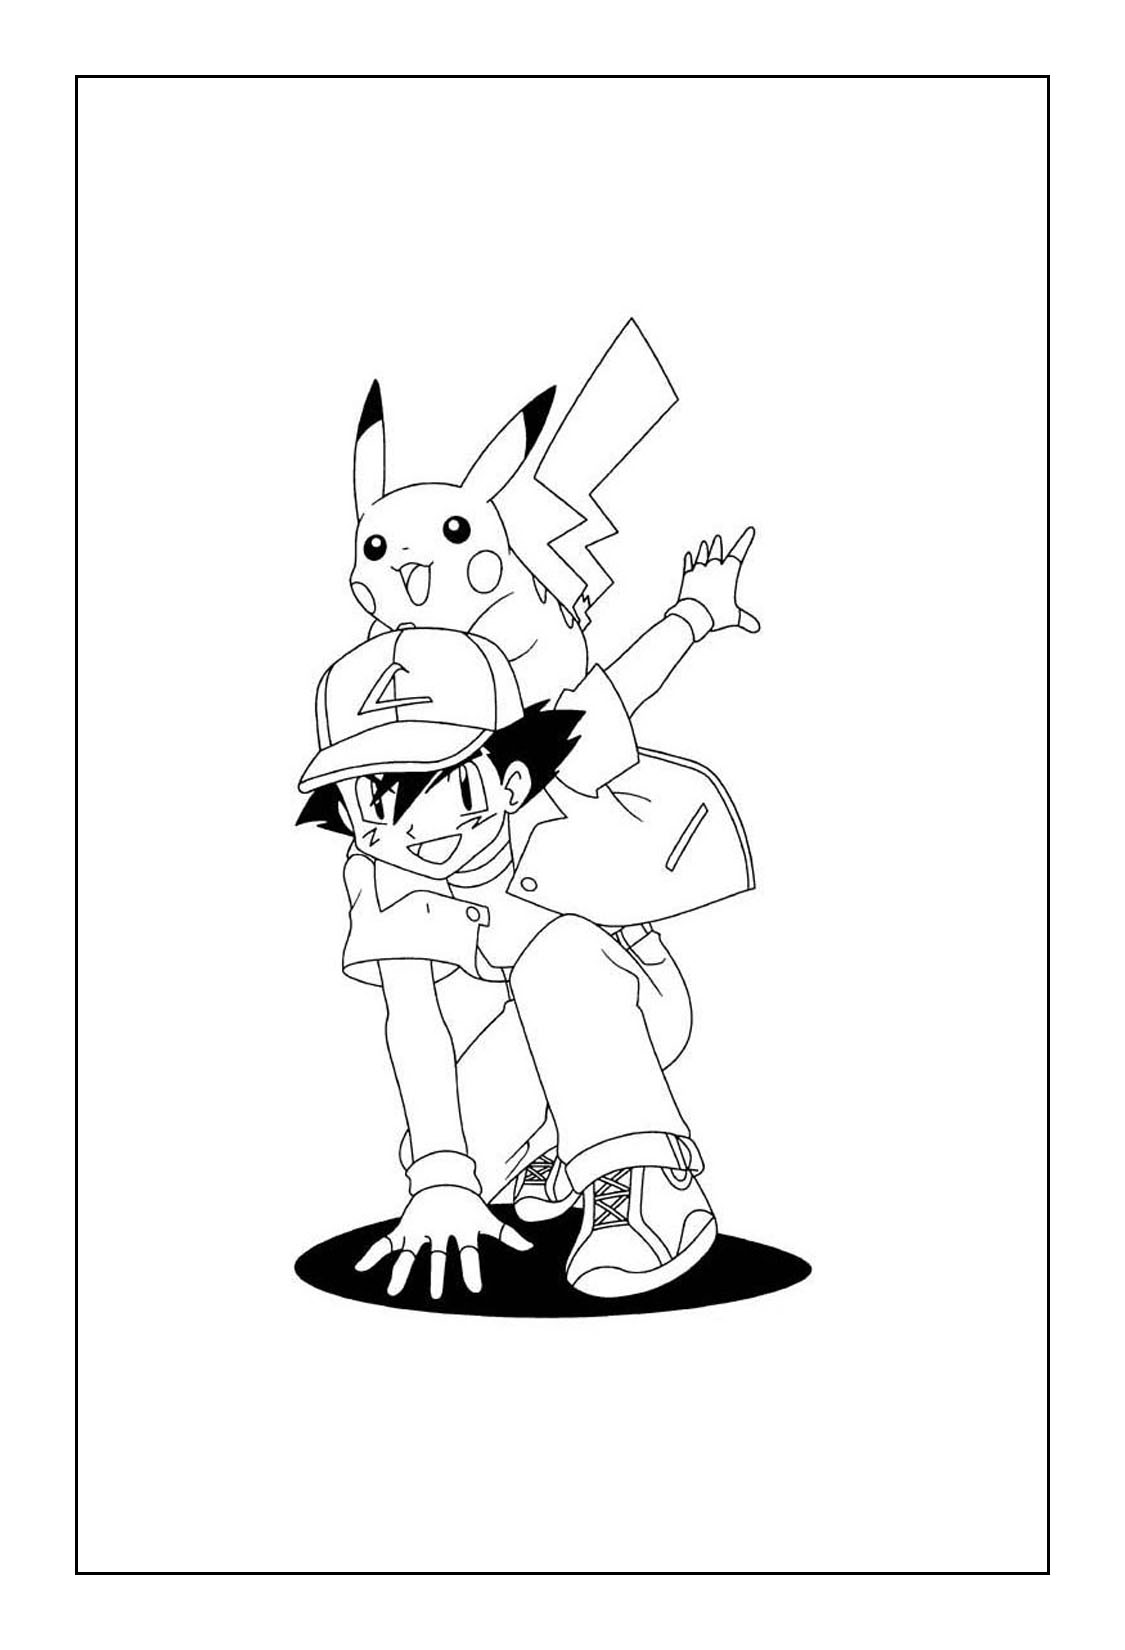 Free Pikachu Coloring Pages - Ash and Pikachu